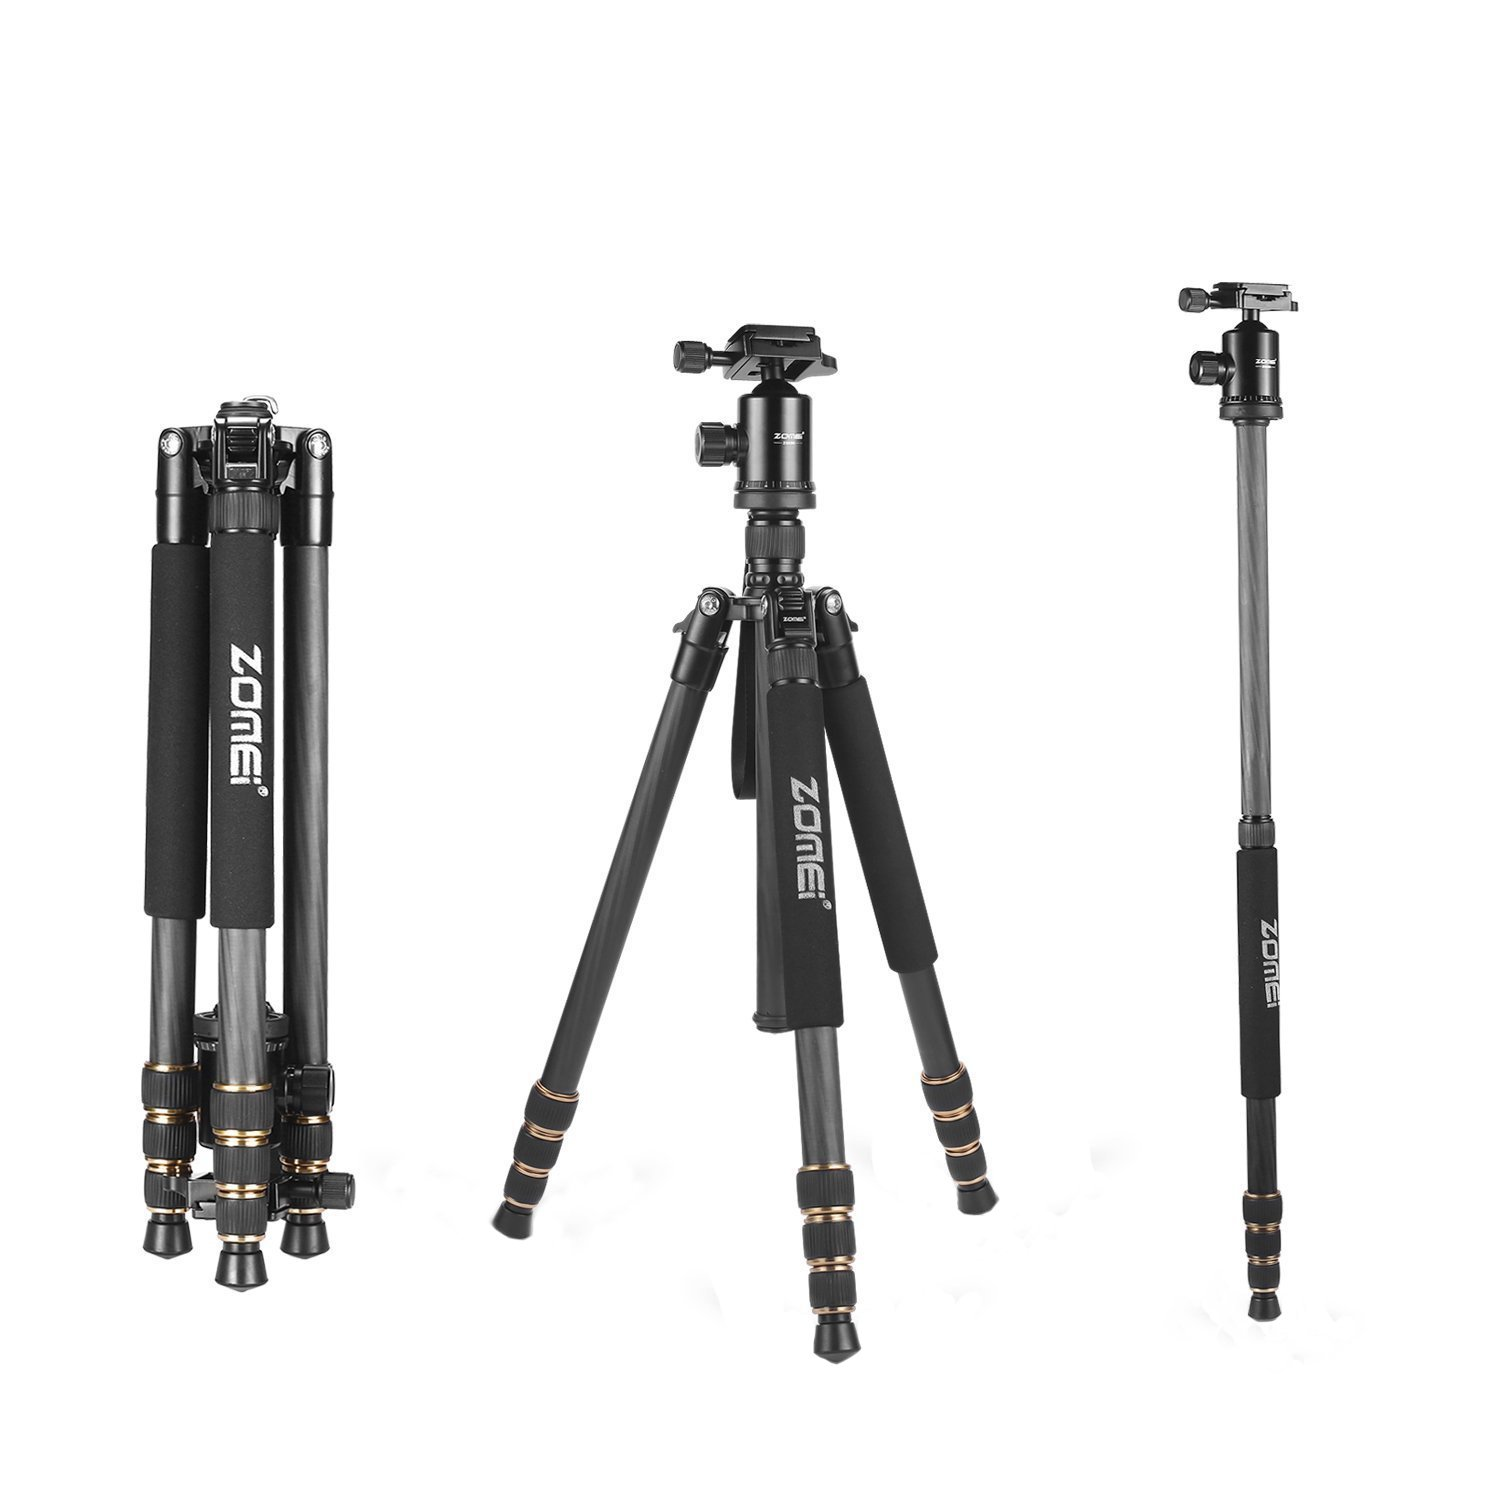 ZOMEi Z668C Lightweight Travel Carbon Fiber Tripod FOR All Canon Sony Nikon Samsung Panasonic Olympus Kodak Fuji DSLR Cameras And Camcorders